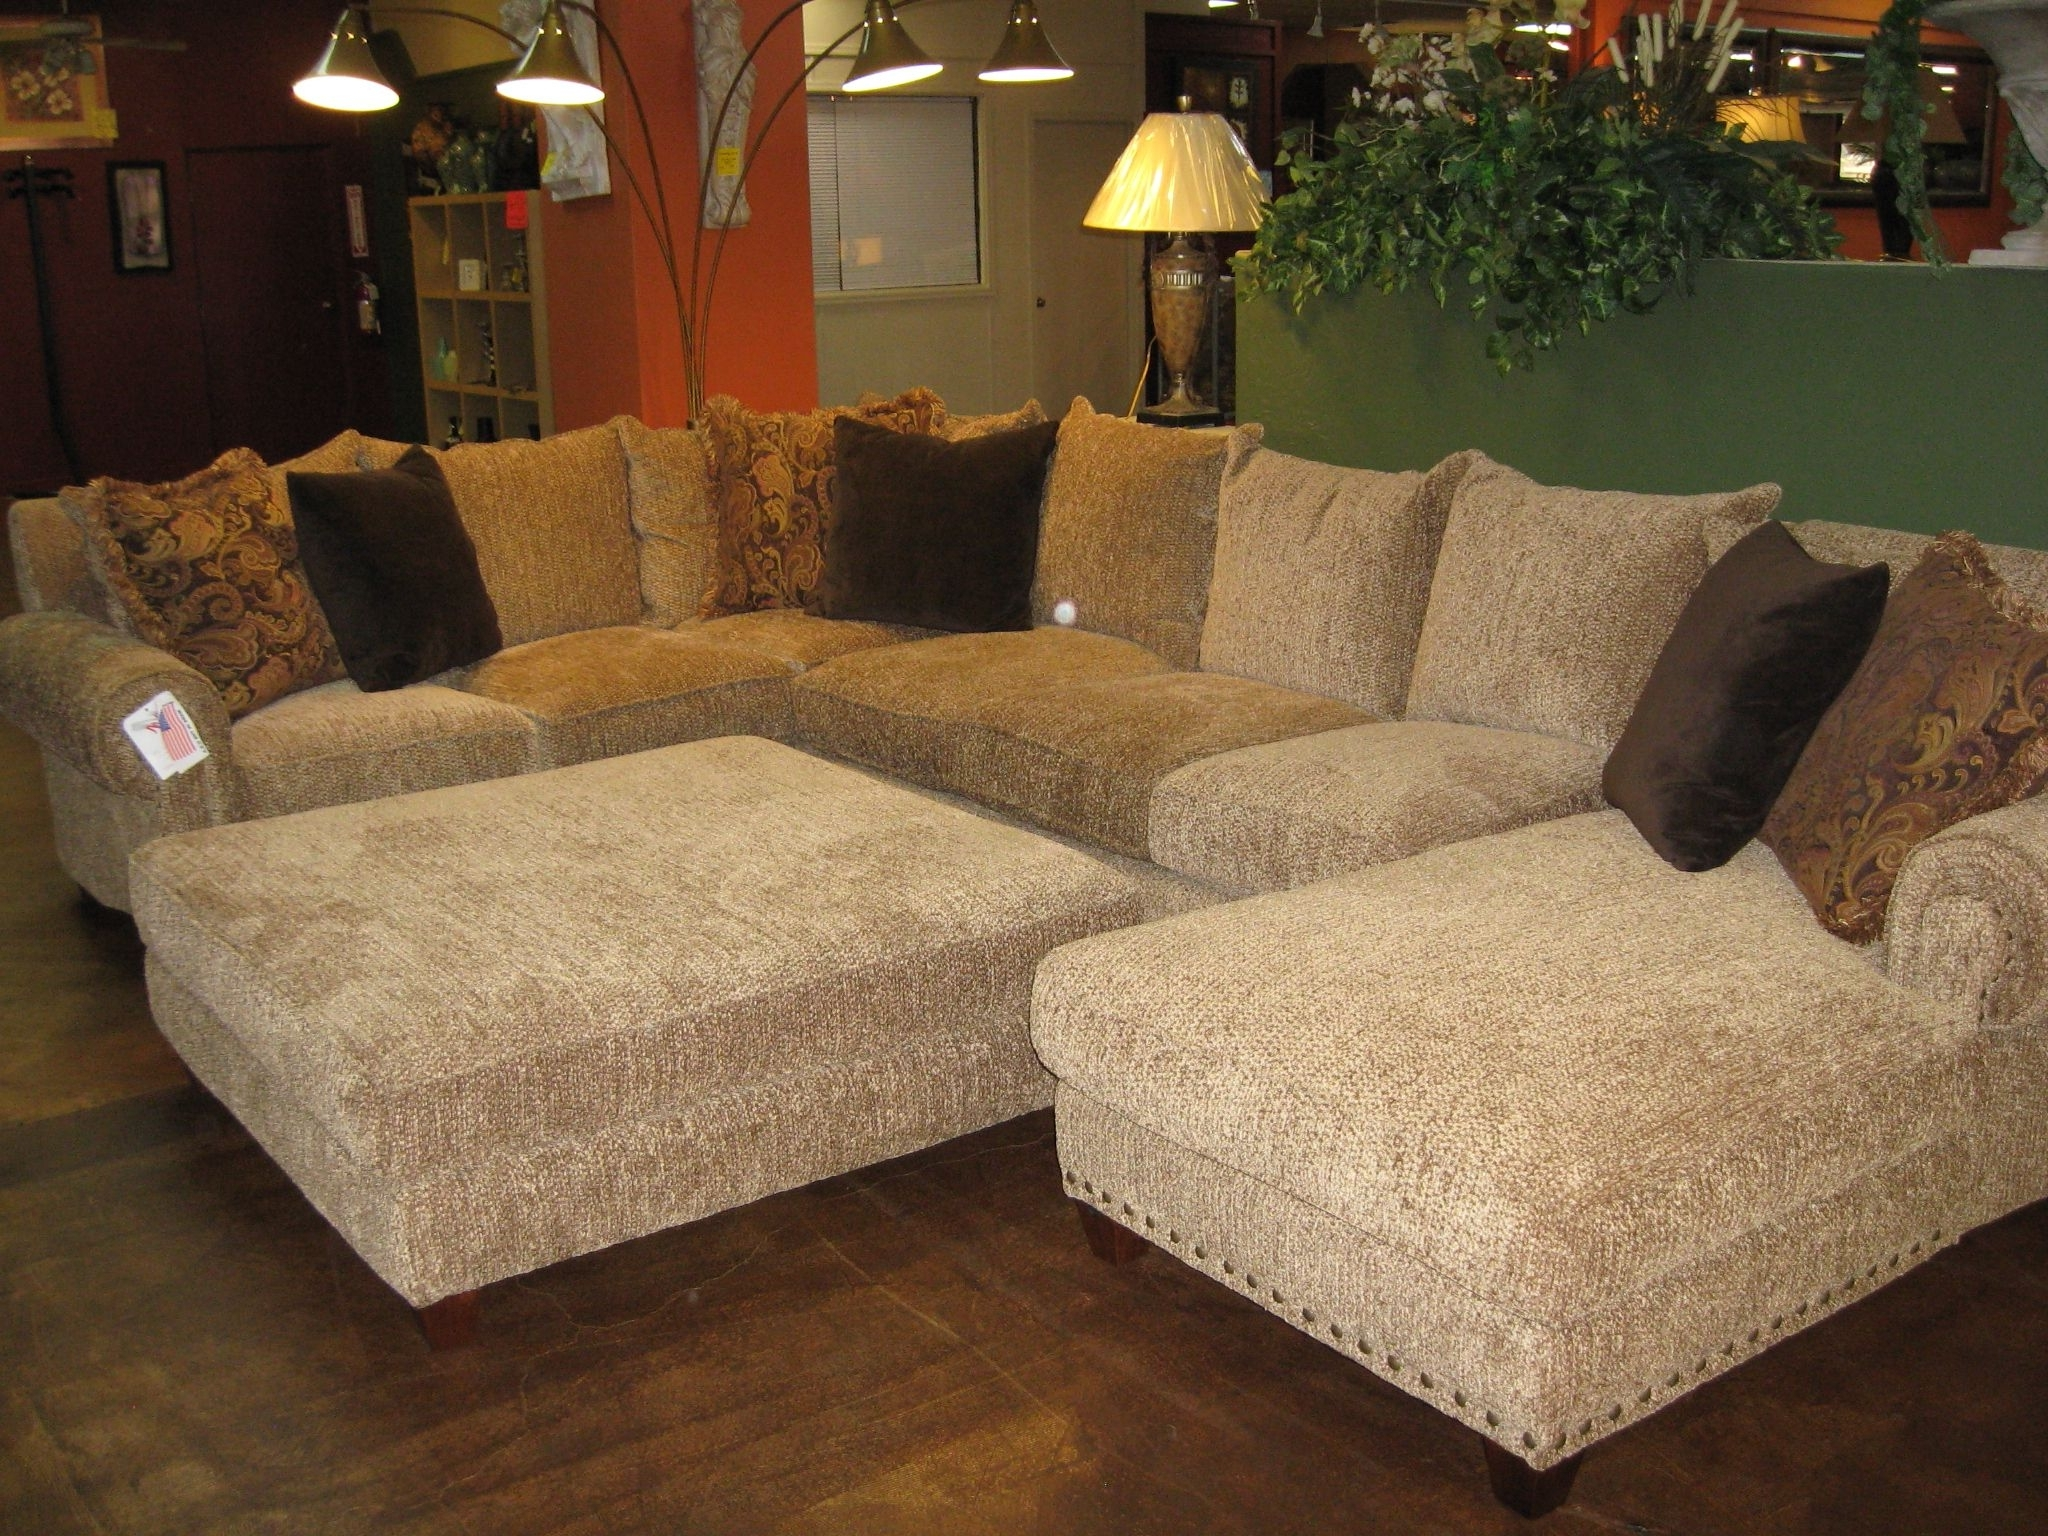 Popular Sectional Sofas With Chaise Lounge And Ottoman Regarding Robert Michael Rocky Mountain Sectional (View 9 of 20)